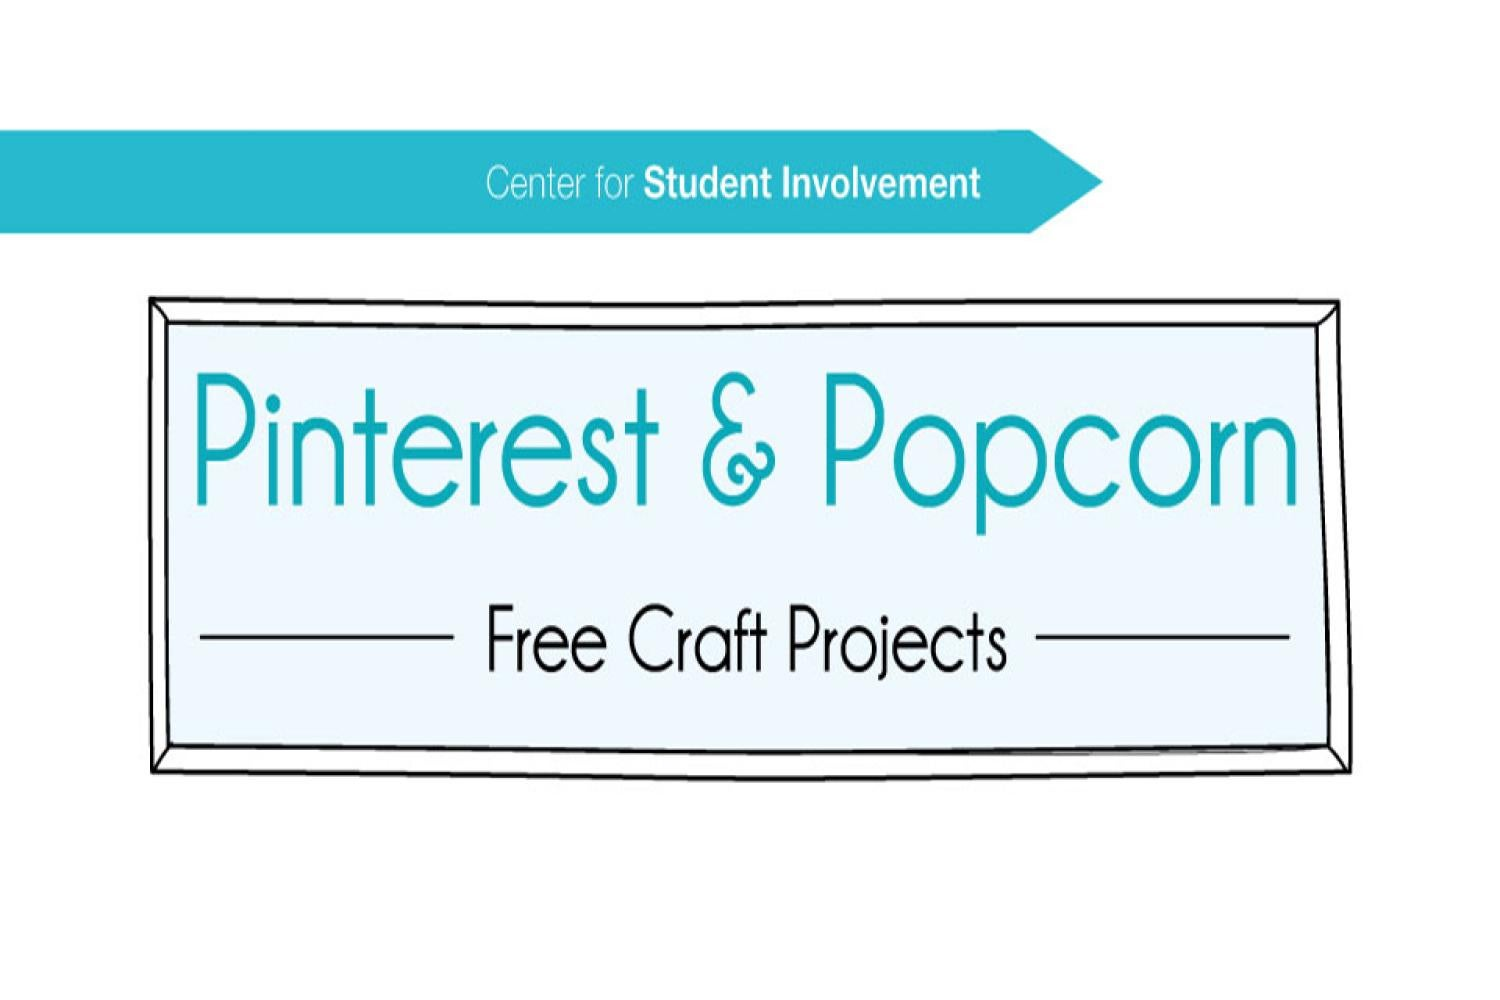 Pinterest and Popcorn poster